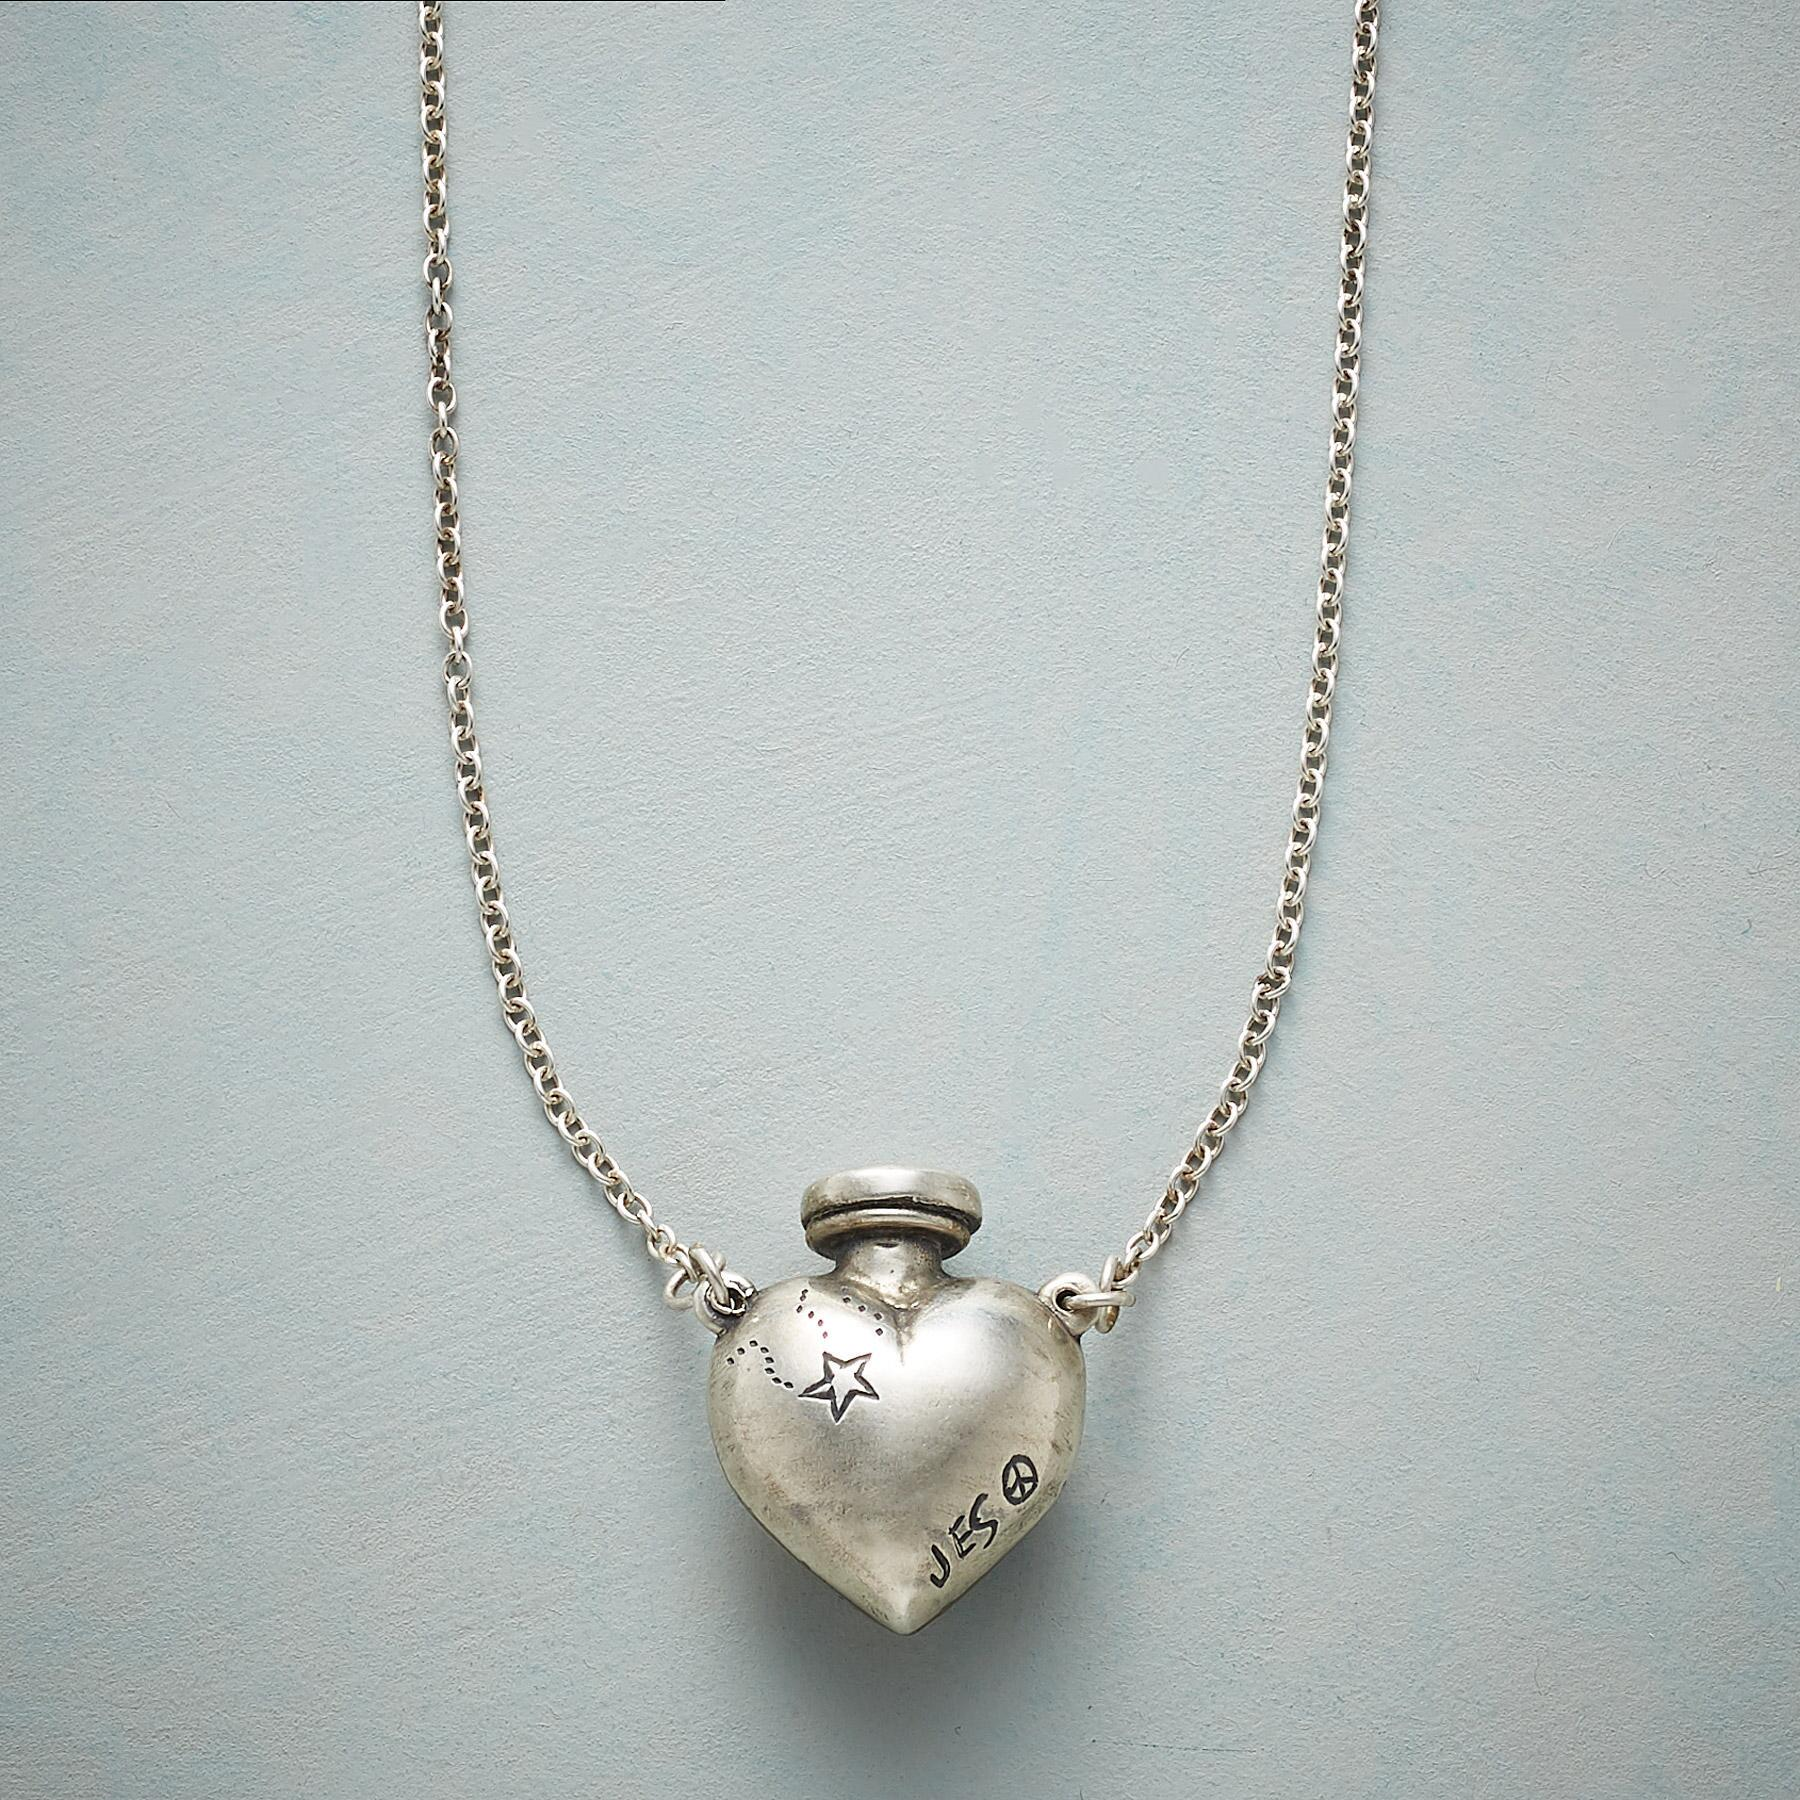 Sterling Silver Heart Vessel Necklace - Sundance.